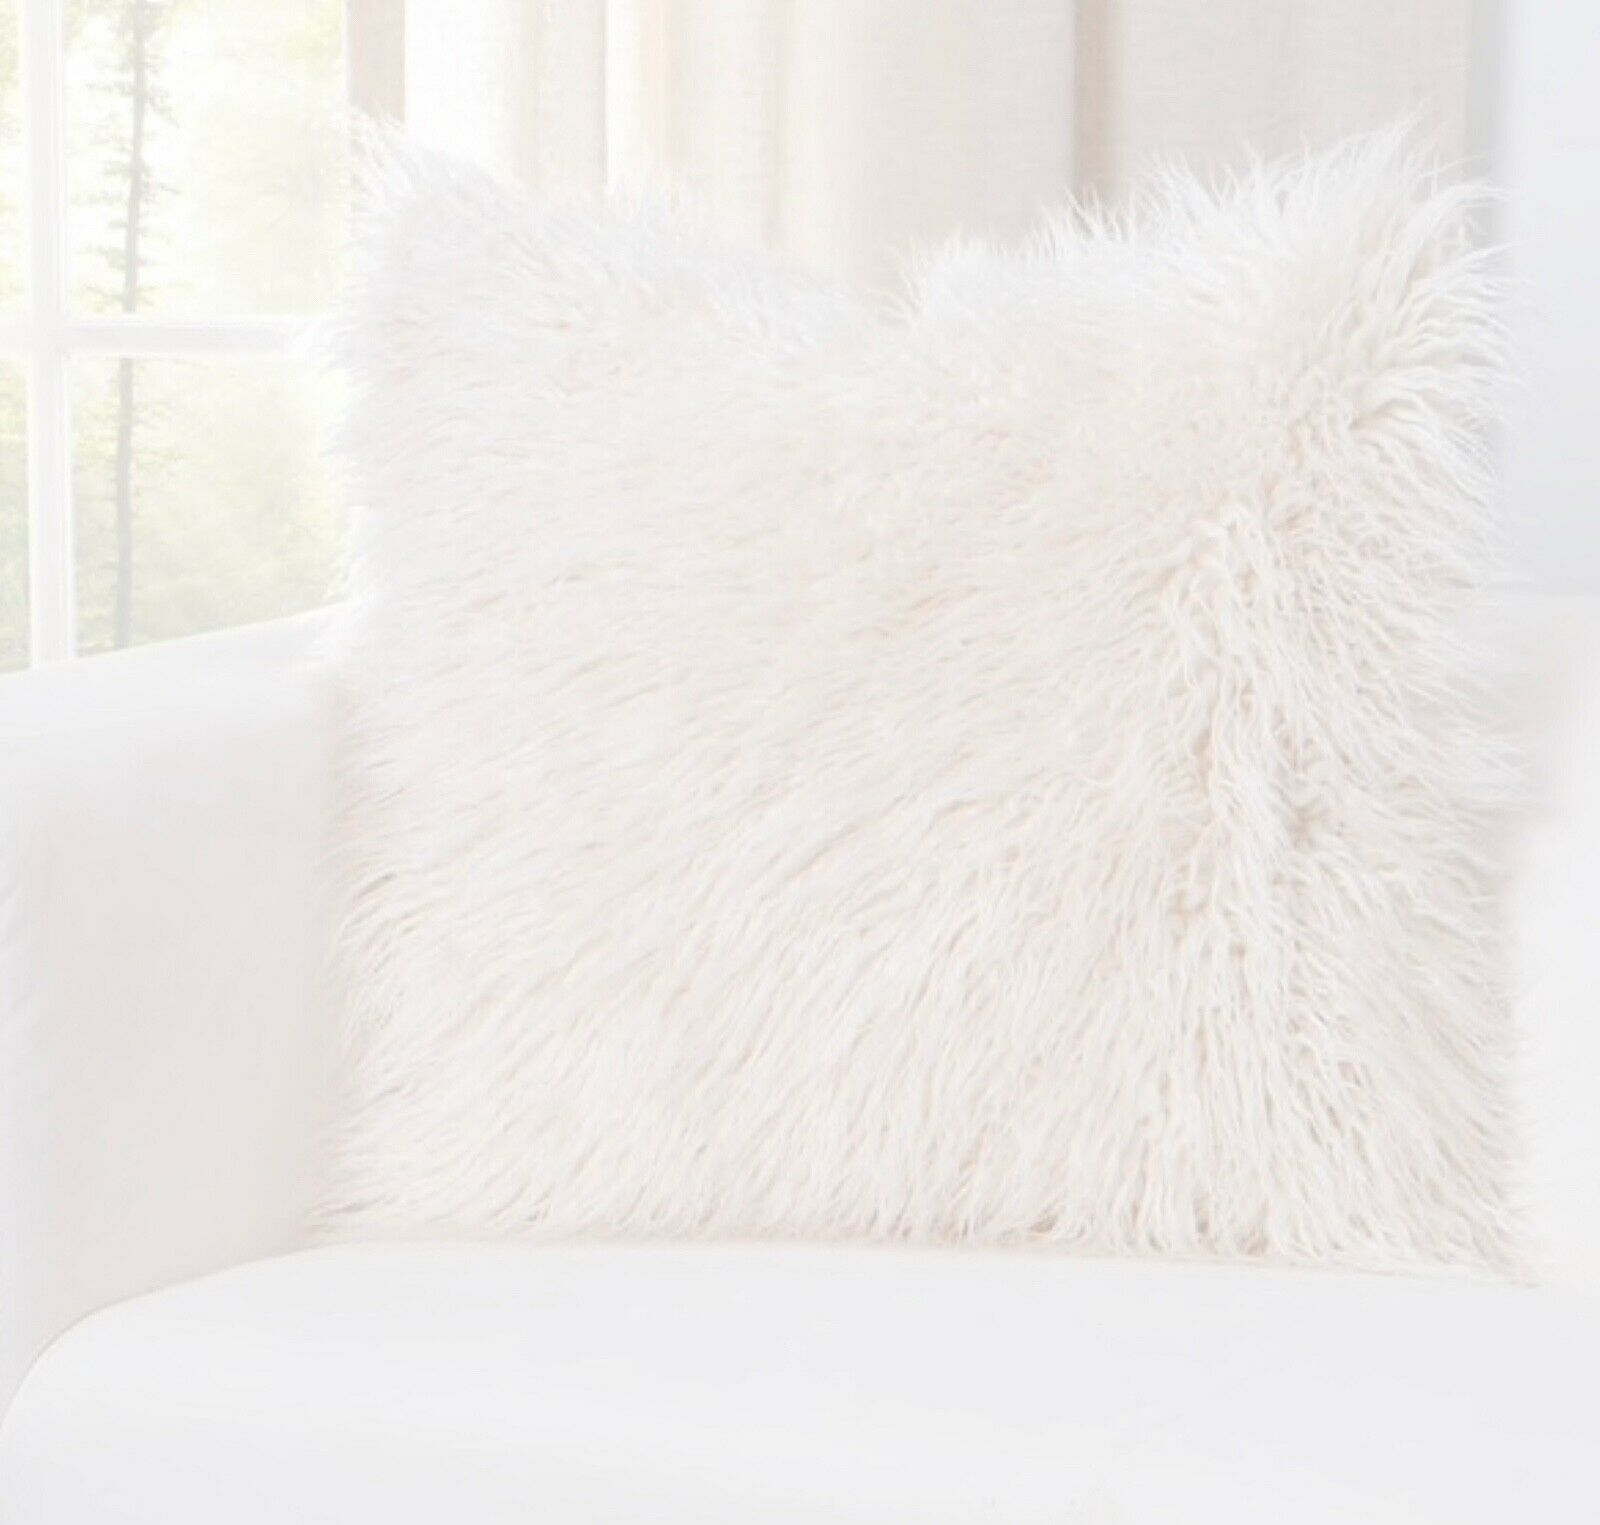 "Primary image for Faux Fur Designer Llama Throw Pillow 16"" x 16"" In color White/Creme"